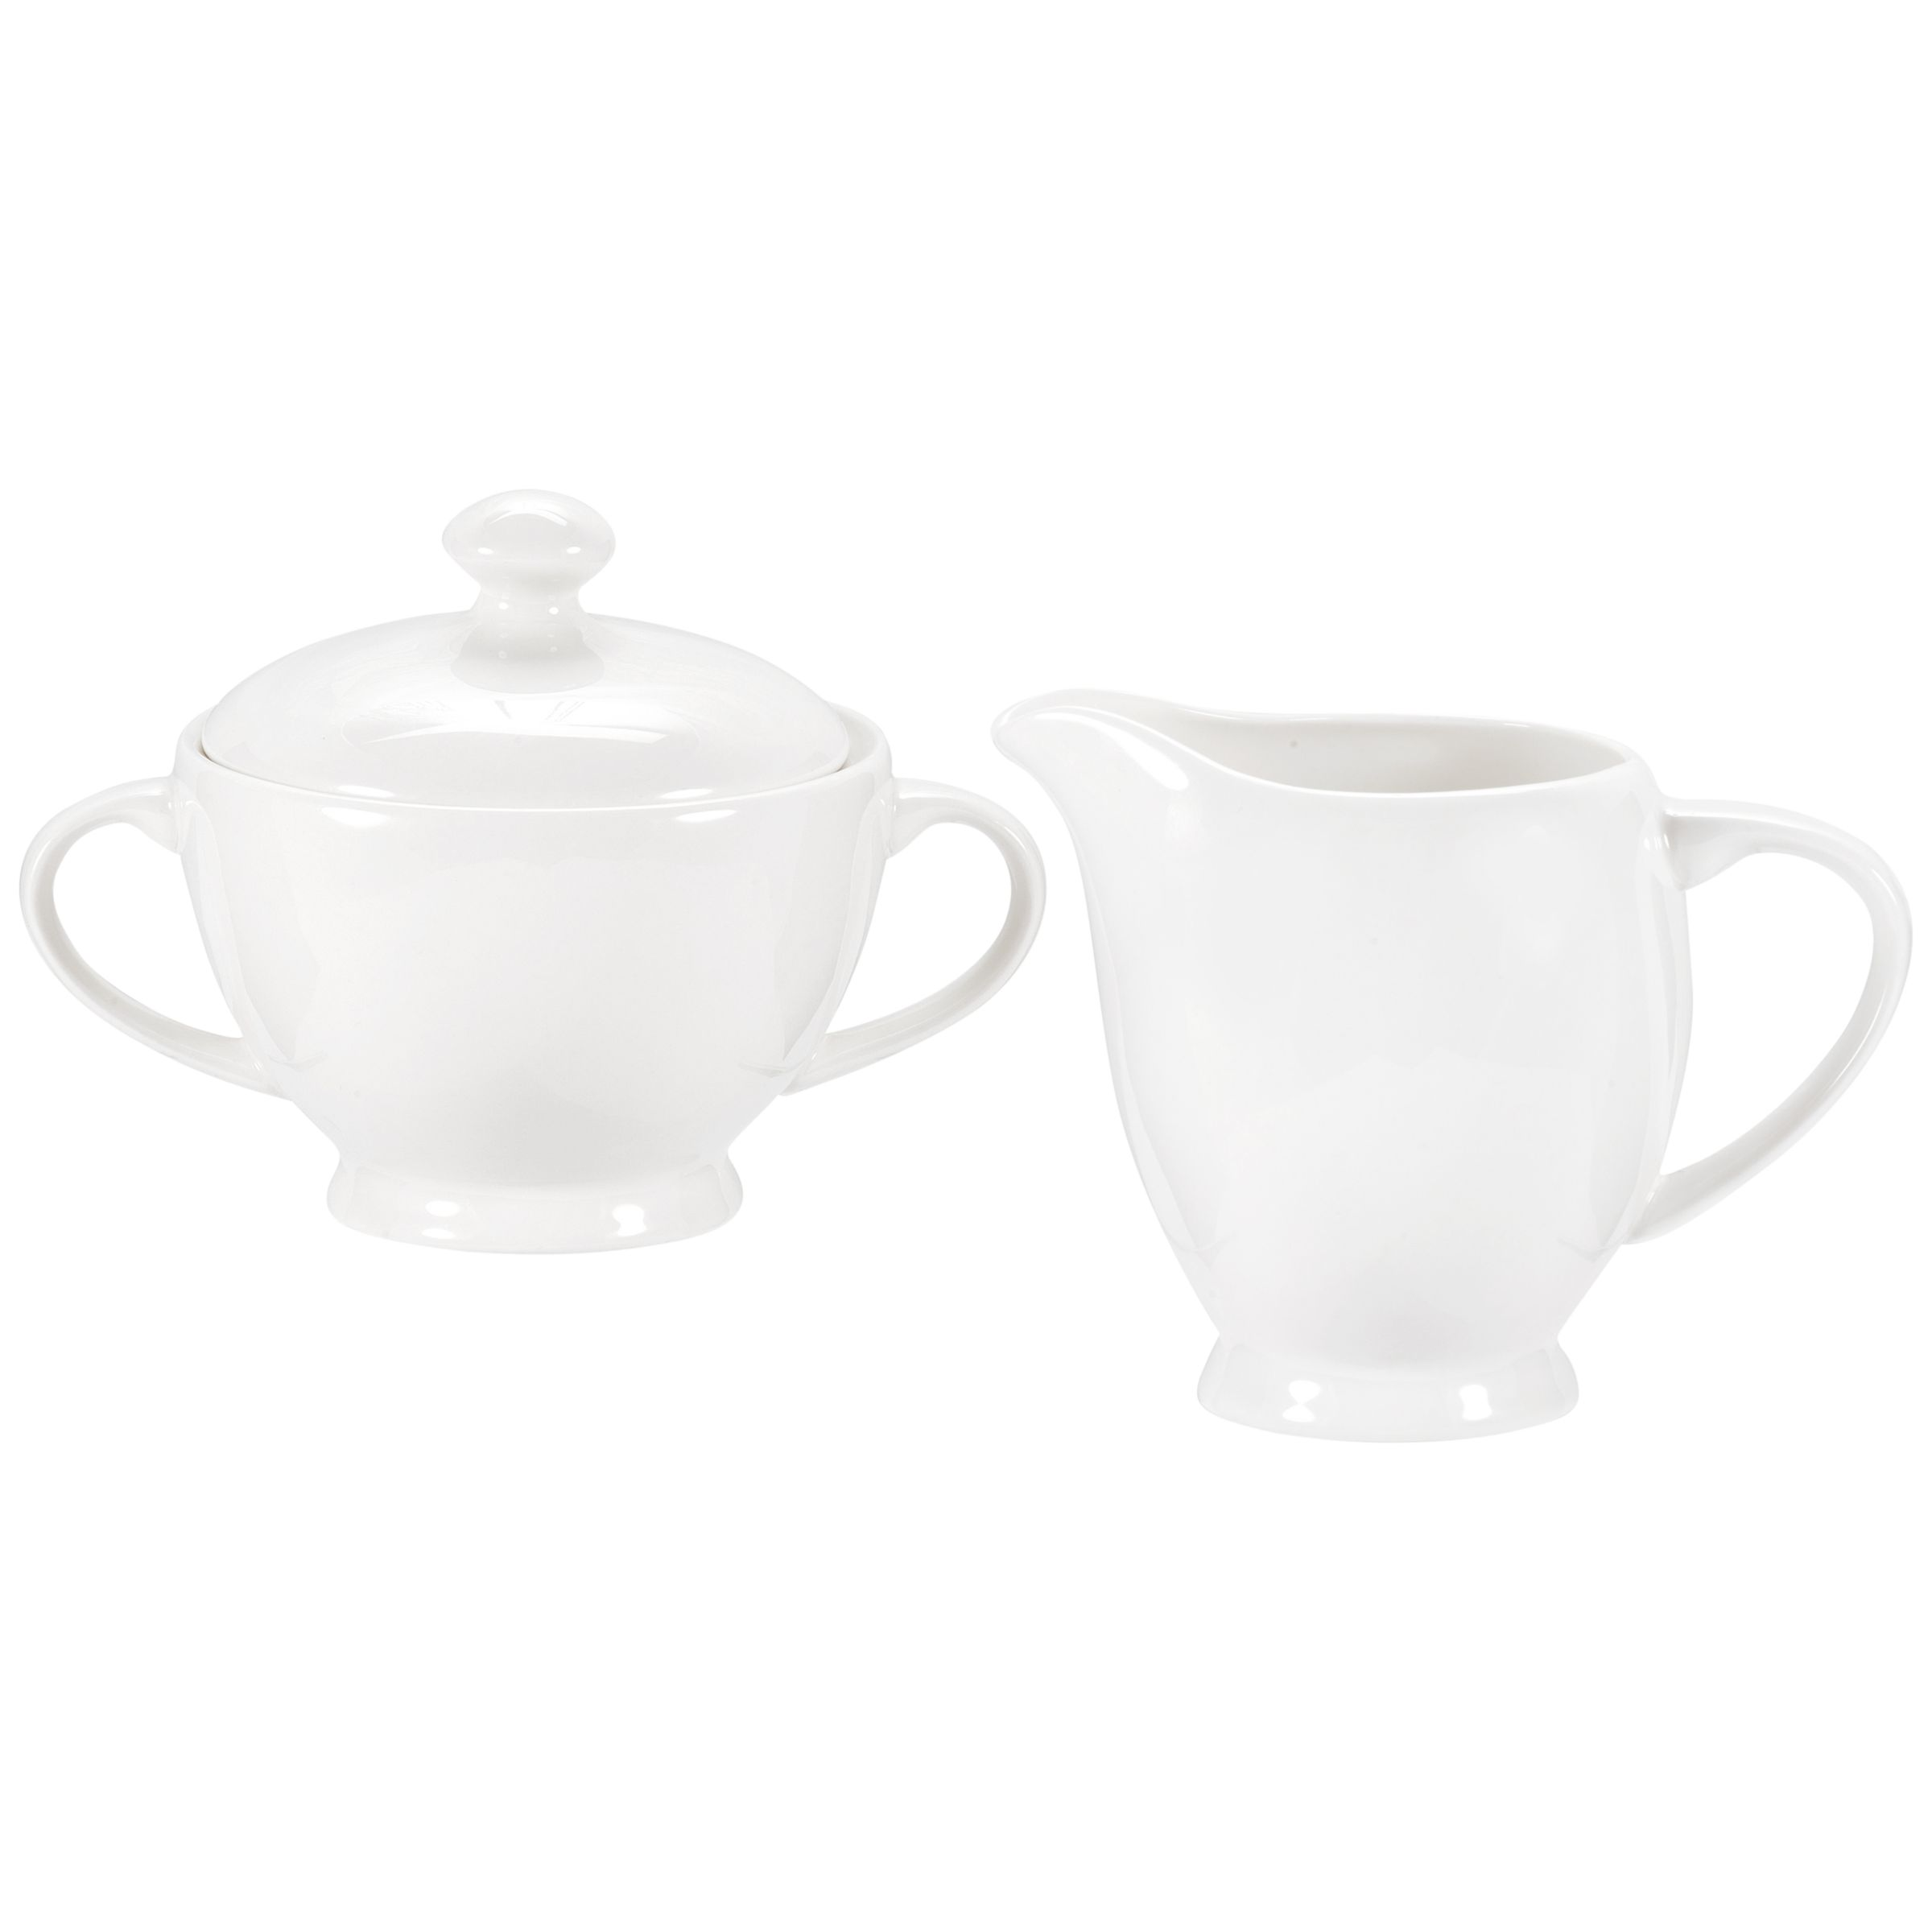 Royal Worcester Royal Worcester Serendipity Bone China Sugar Bowl & Creamer Set, White